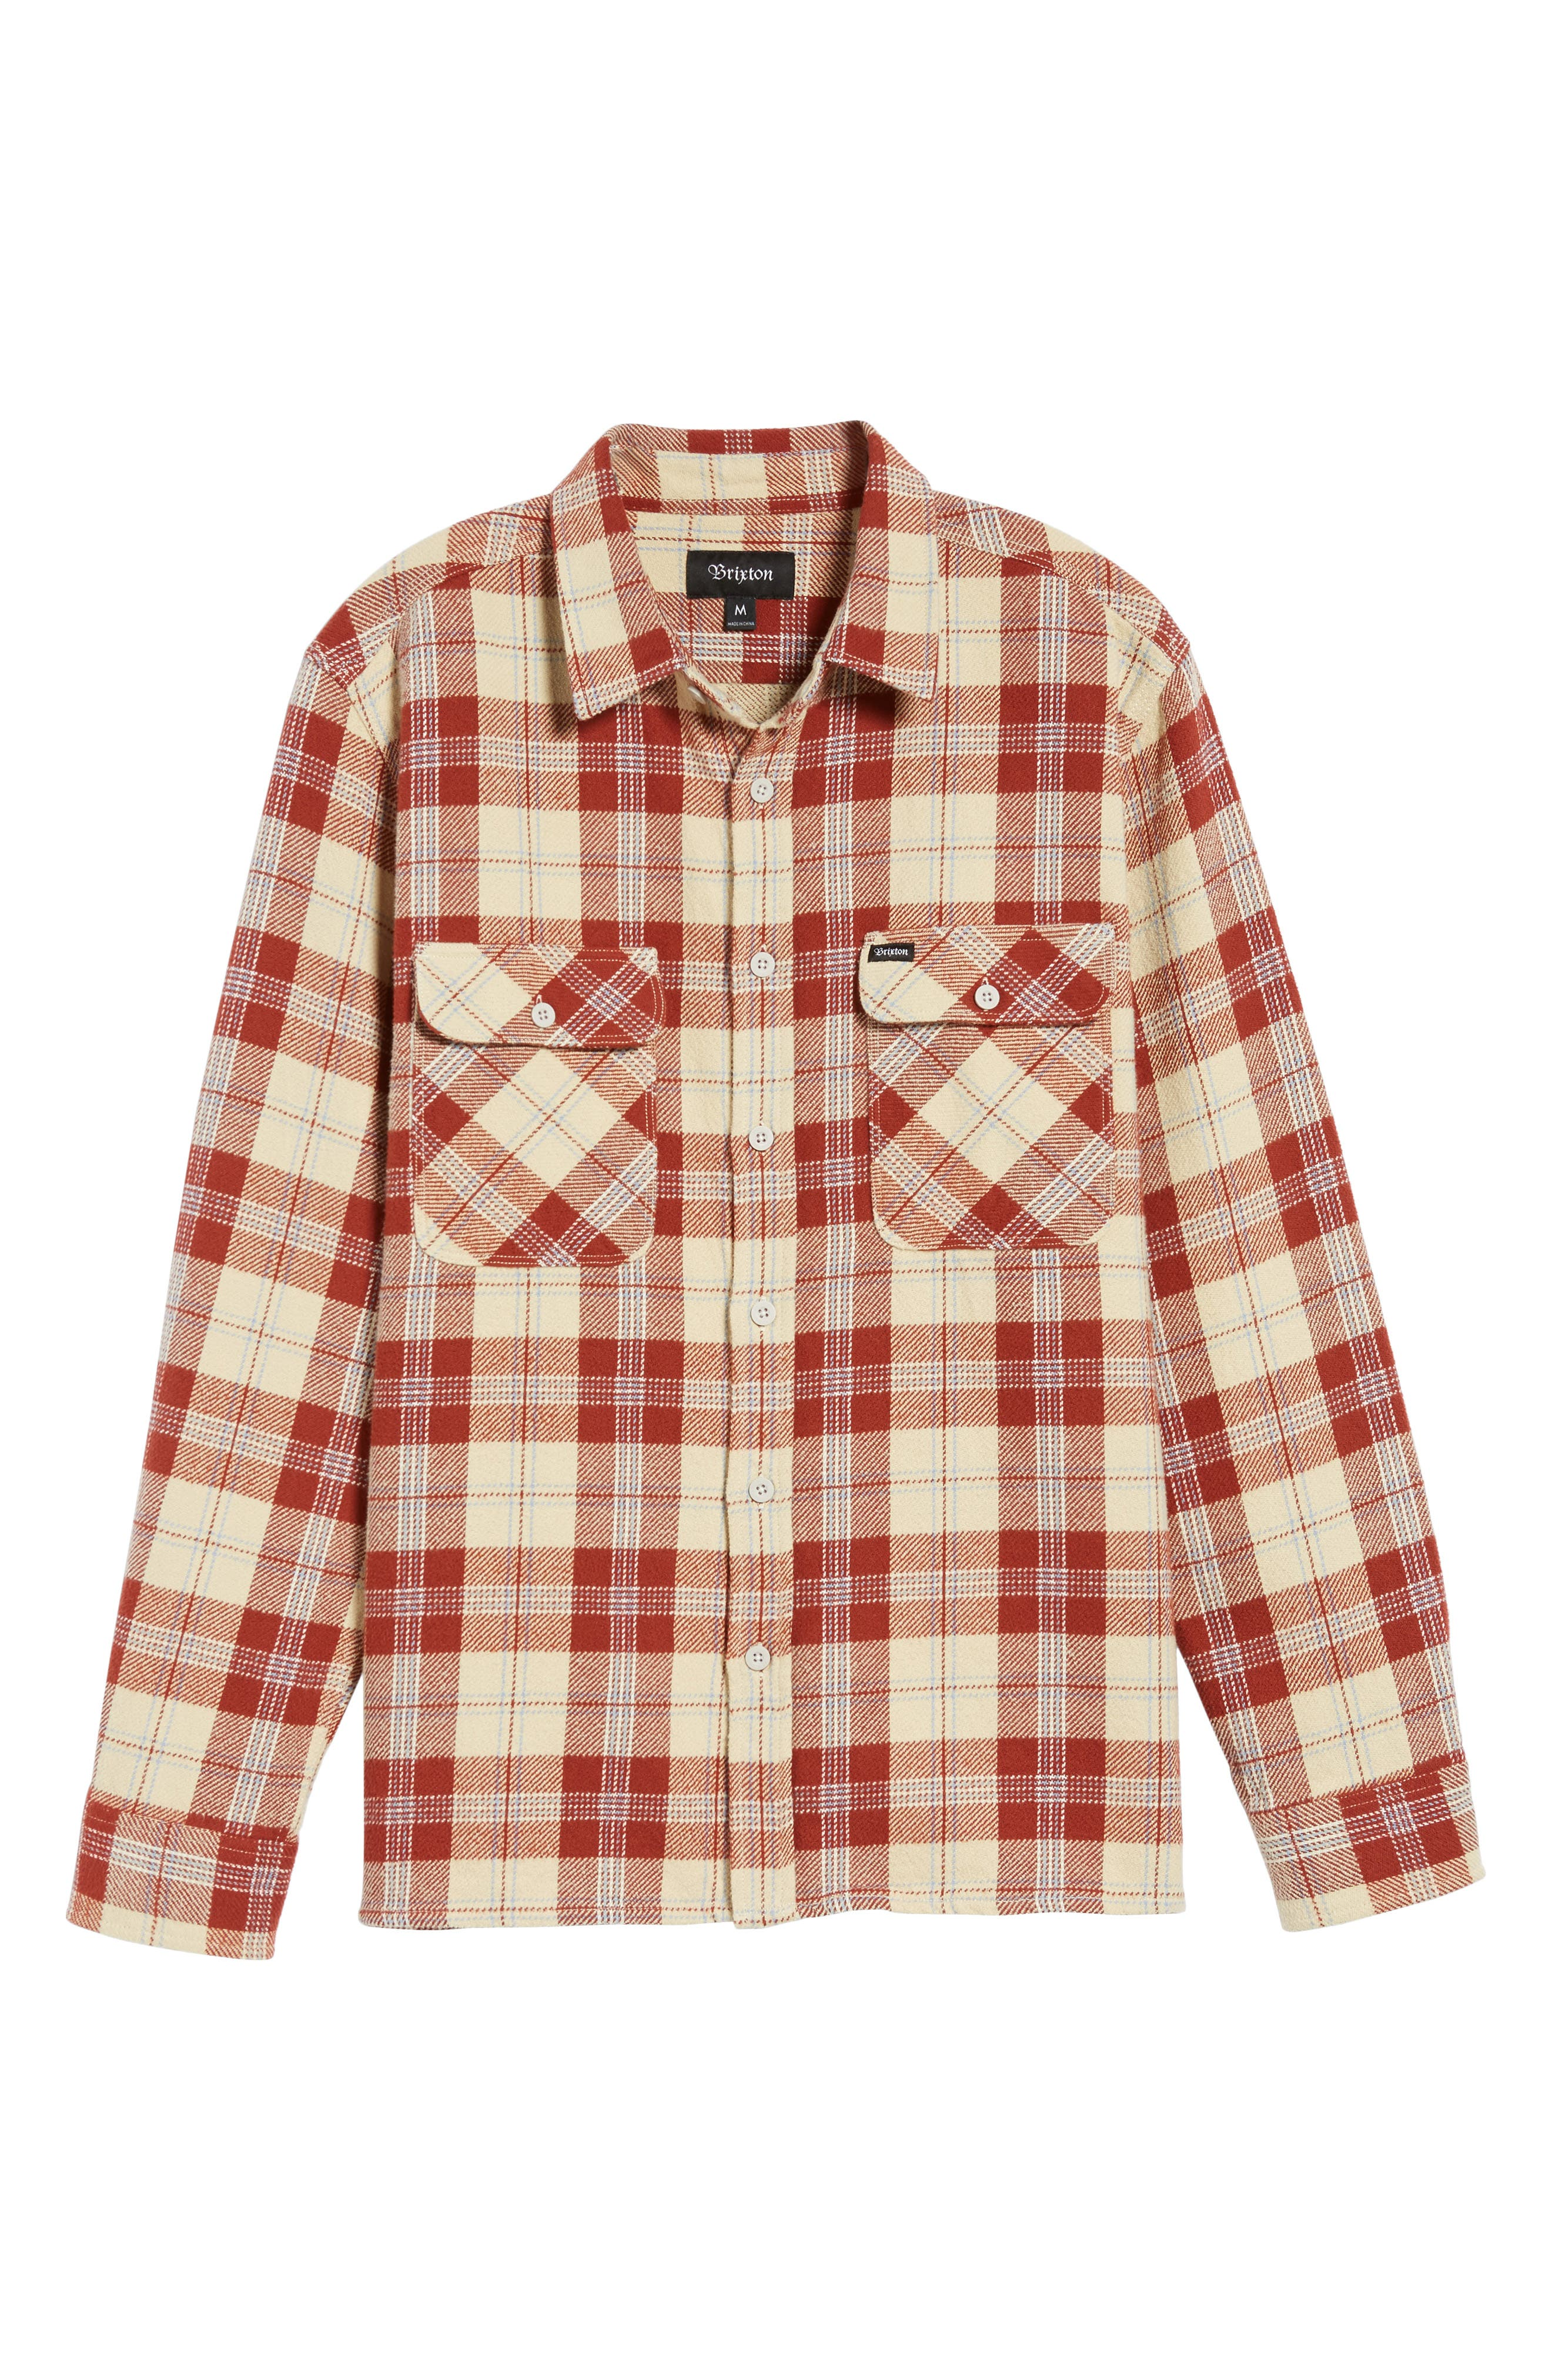 'Archie' Plaid Flannel Shirt,                             Main thumbnail 1, color,                             Brick